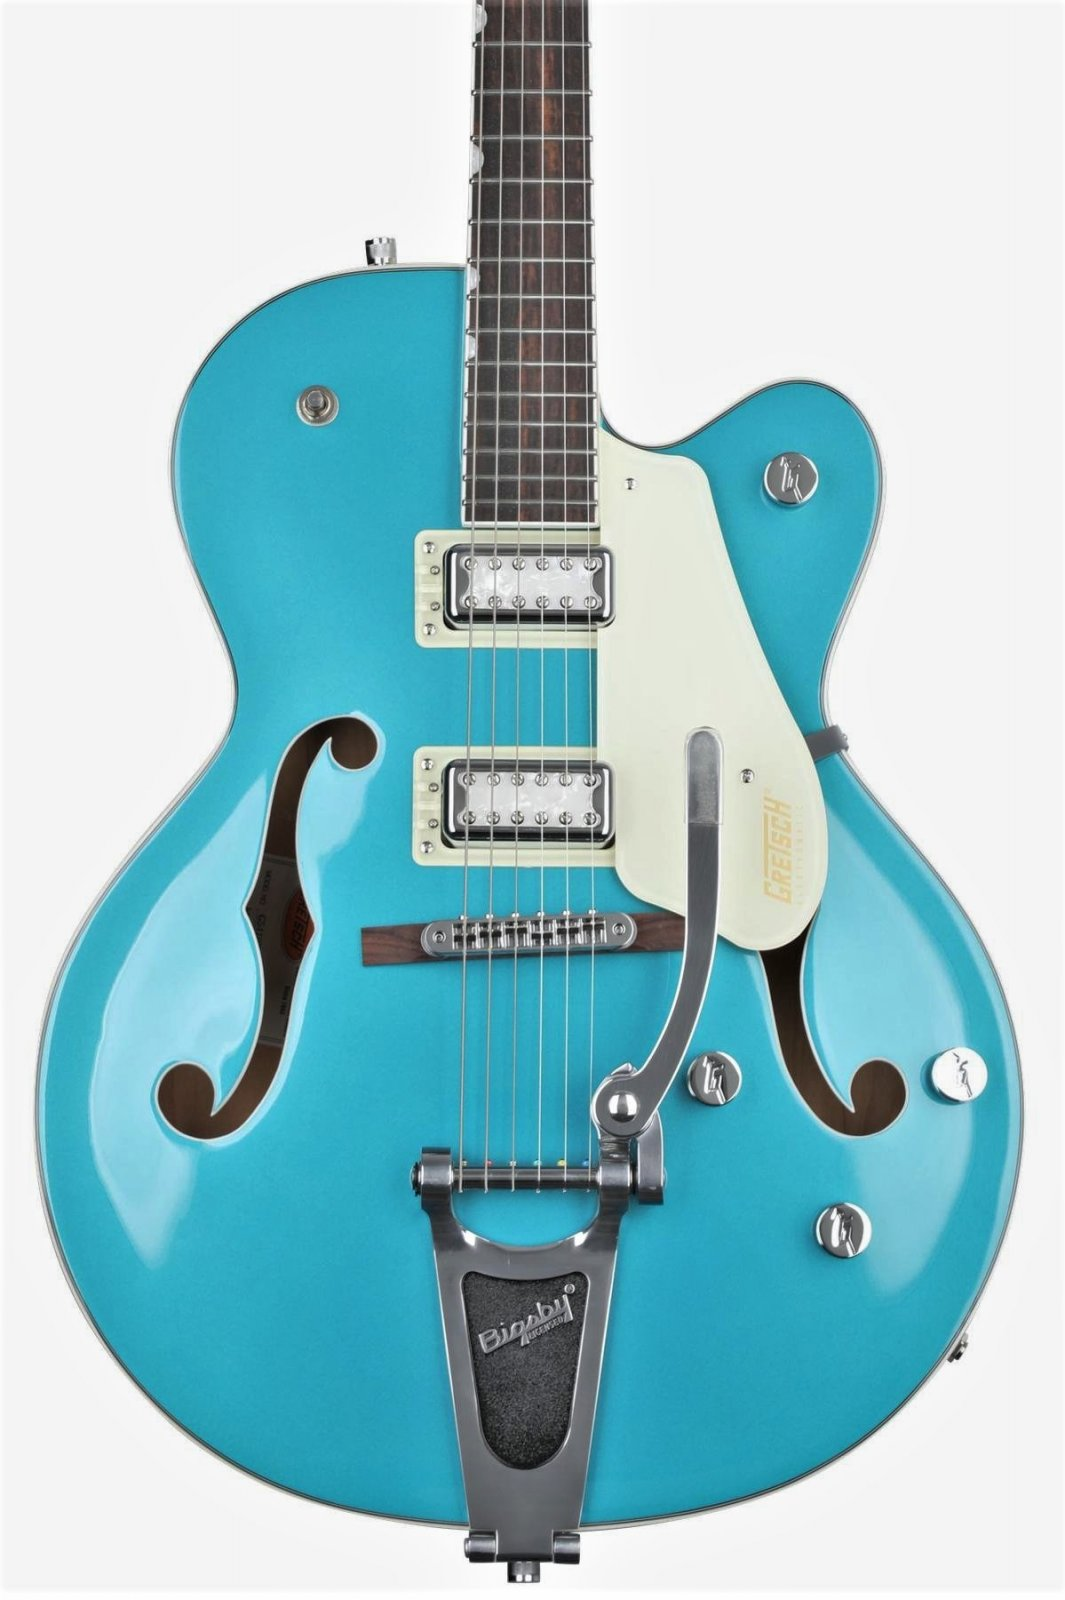 Gretsch G5410T Limited Edition Electromatic Tri-Five Hollowbody E/G Bigsby Ocean Turquoise/Vintage White